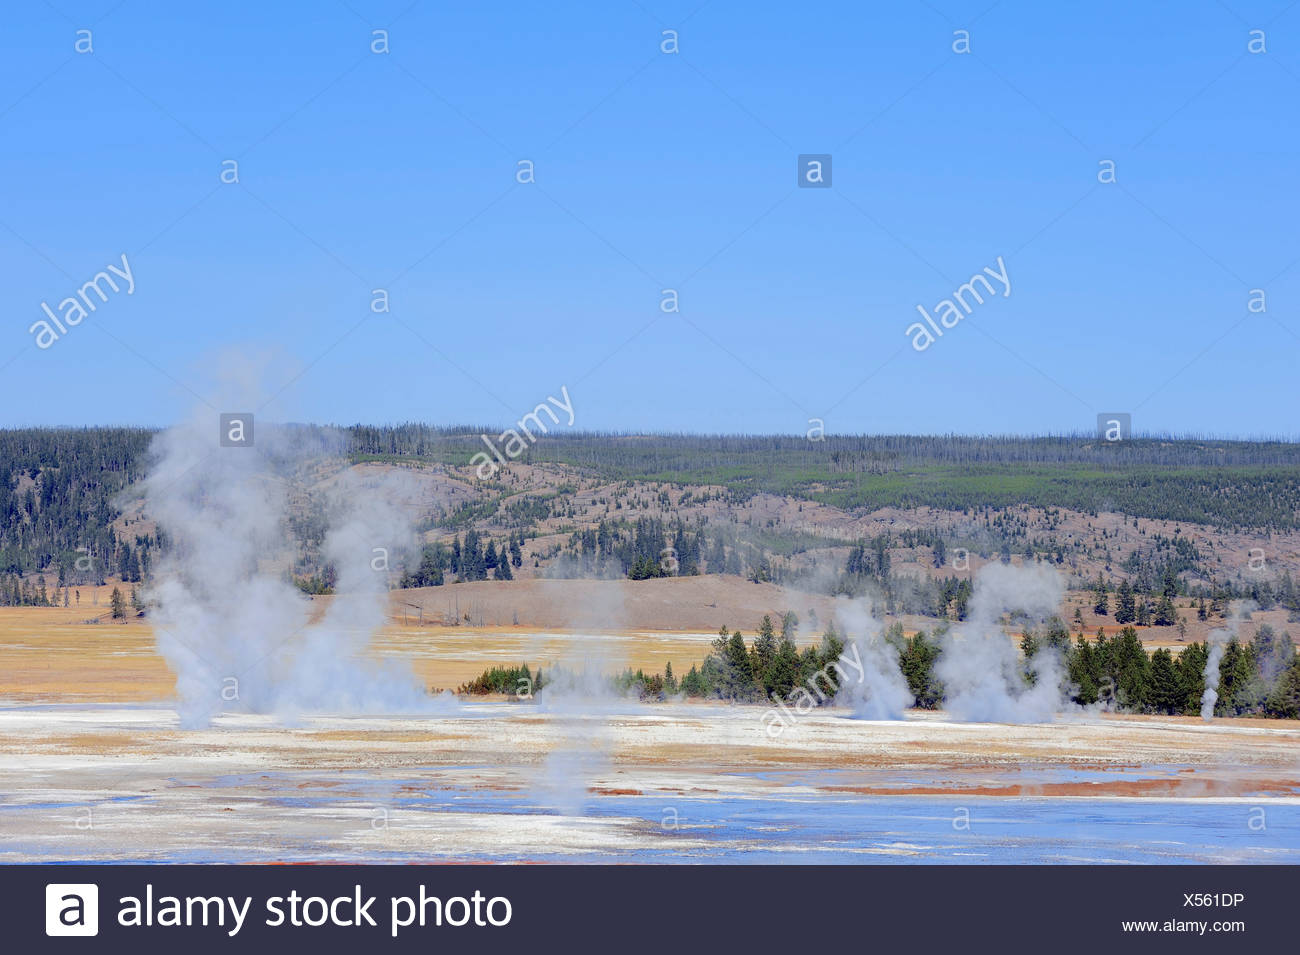 Geysers in the Fountain Paint Pot area, Yellowstone National Park, Wyoming, USA - Stock Image